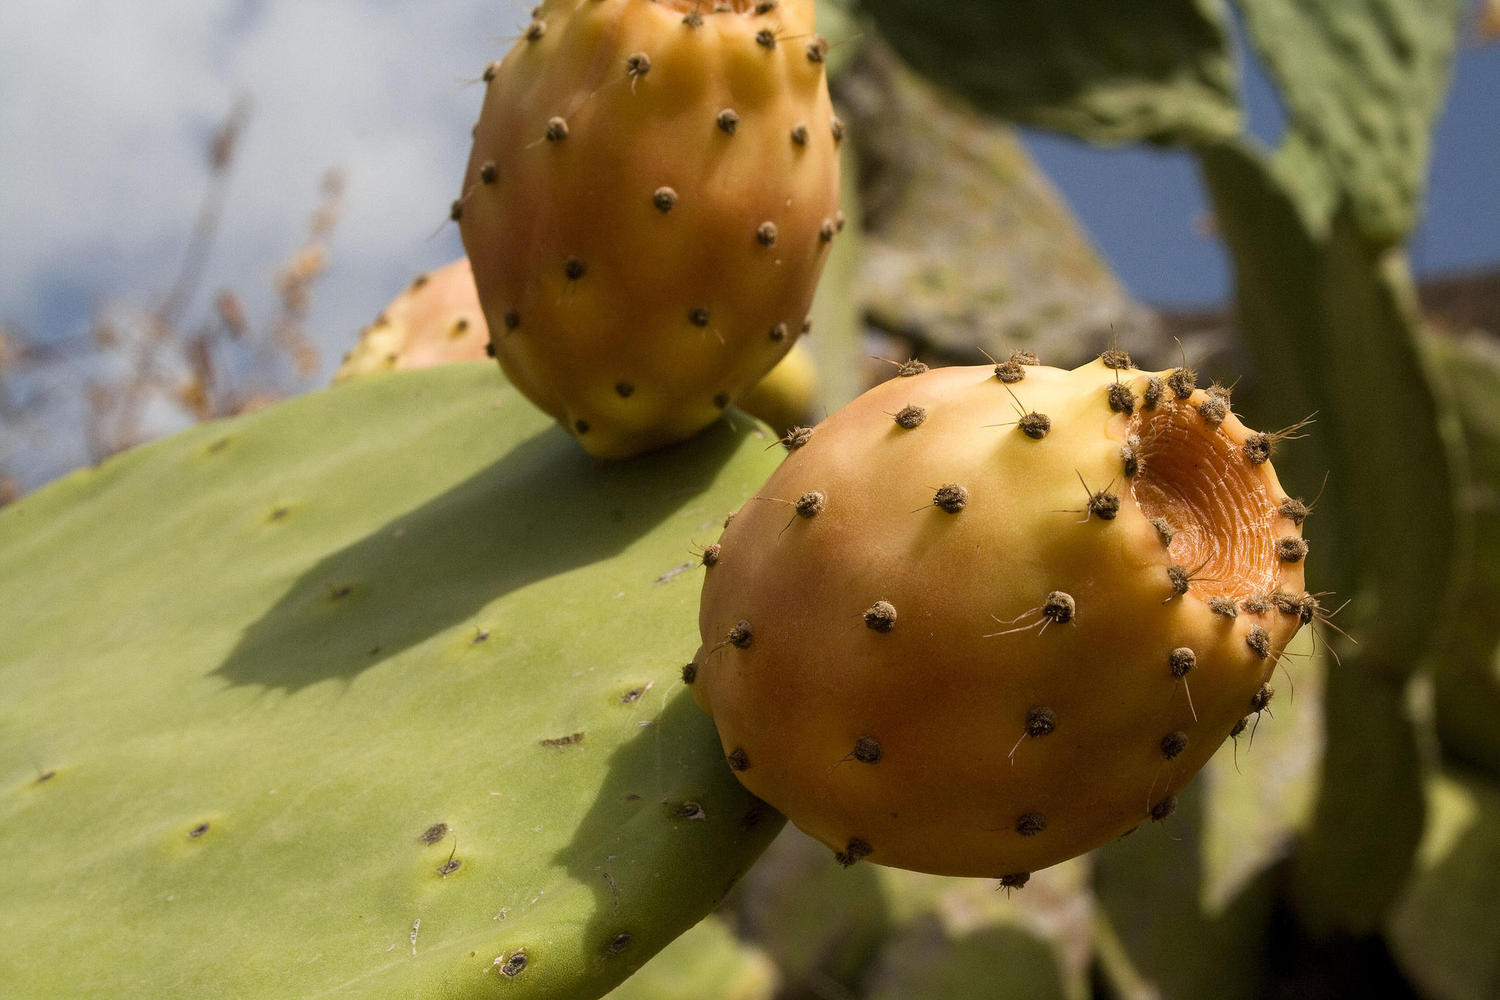 Prickly figs give a Mexican feeling to the Cabo de Gata area.